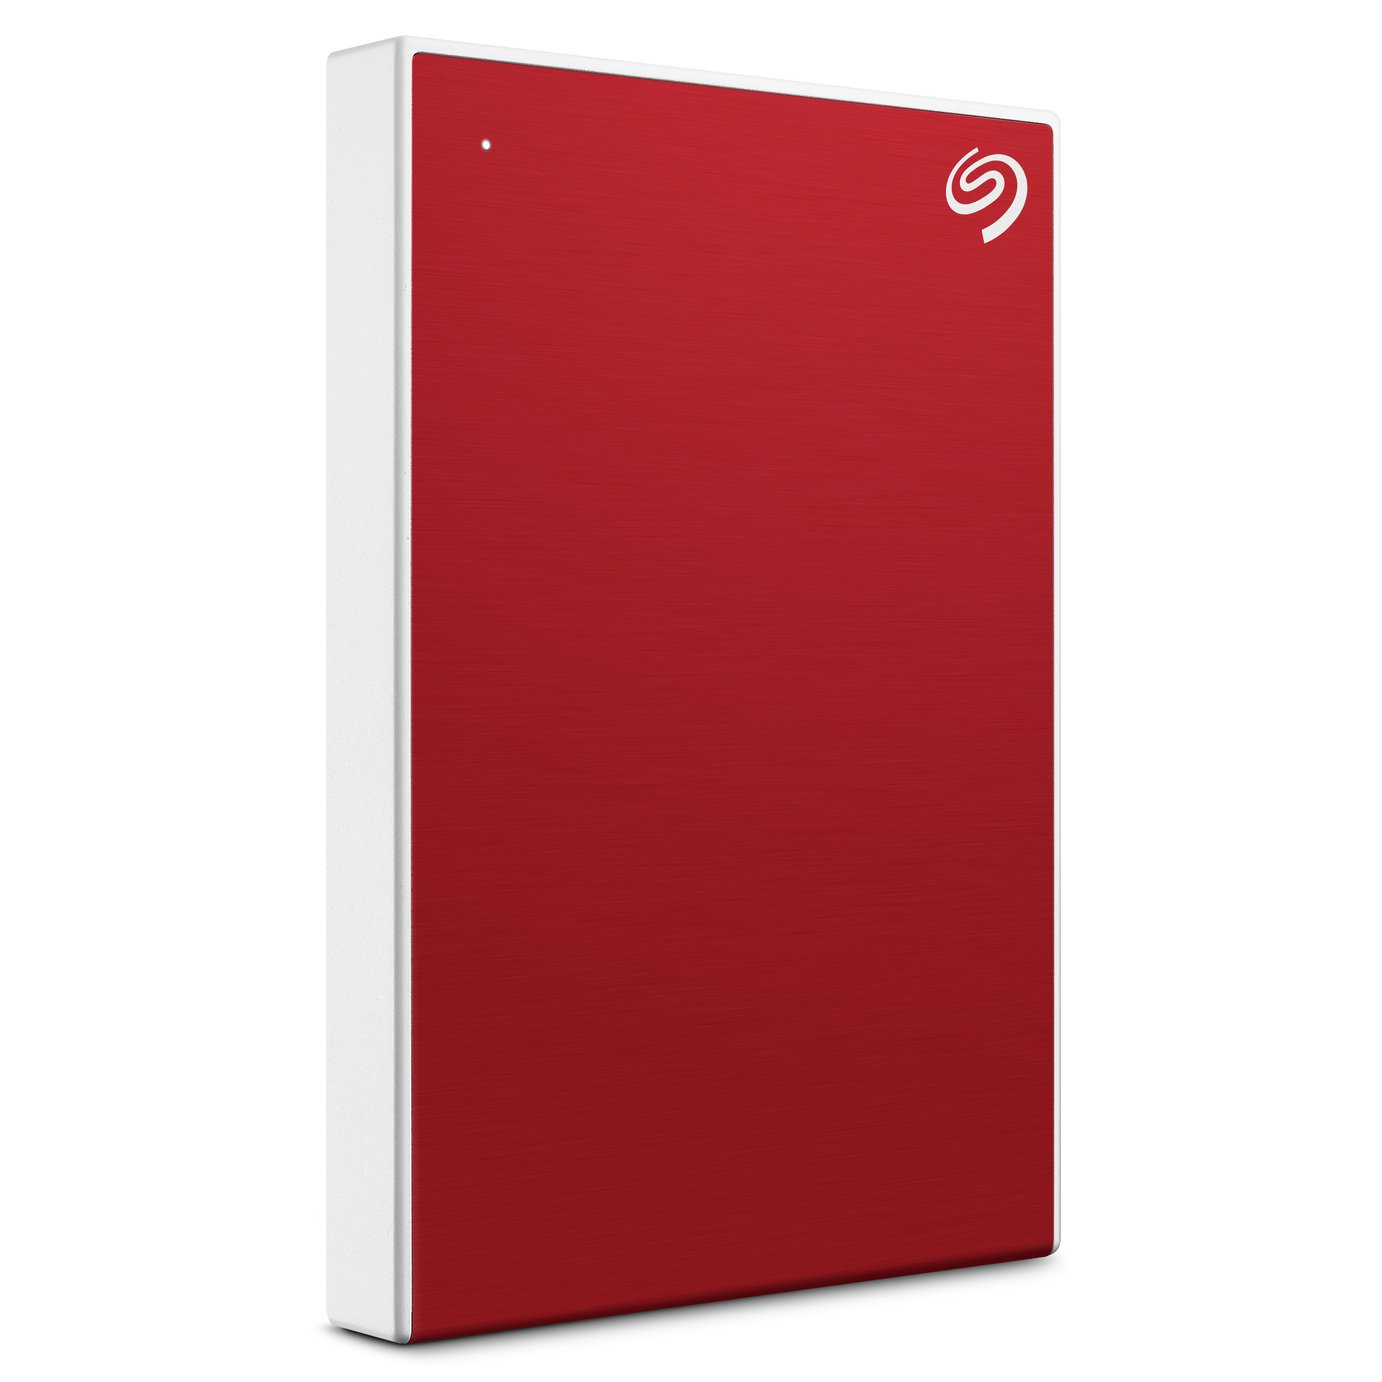 Seagate 2 TB Backup Plus Slim USB 3.0 Portable 2.5 Inch External Hard Drive for PC and Mac with 2 Months Free Adobe Creative Cloud Photography Plan - Red Best Price and Cheapest